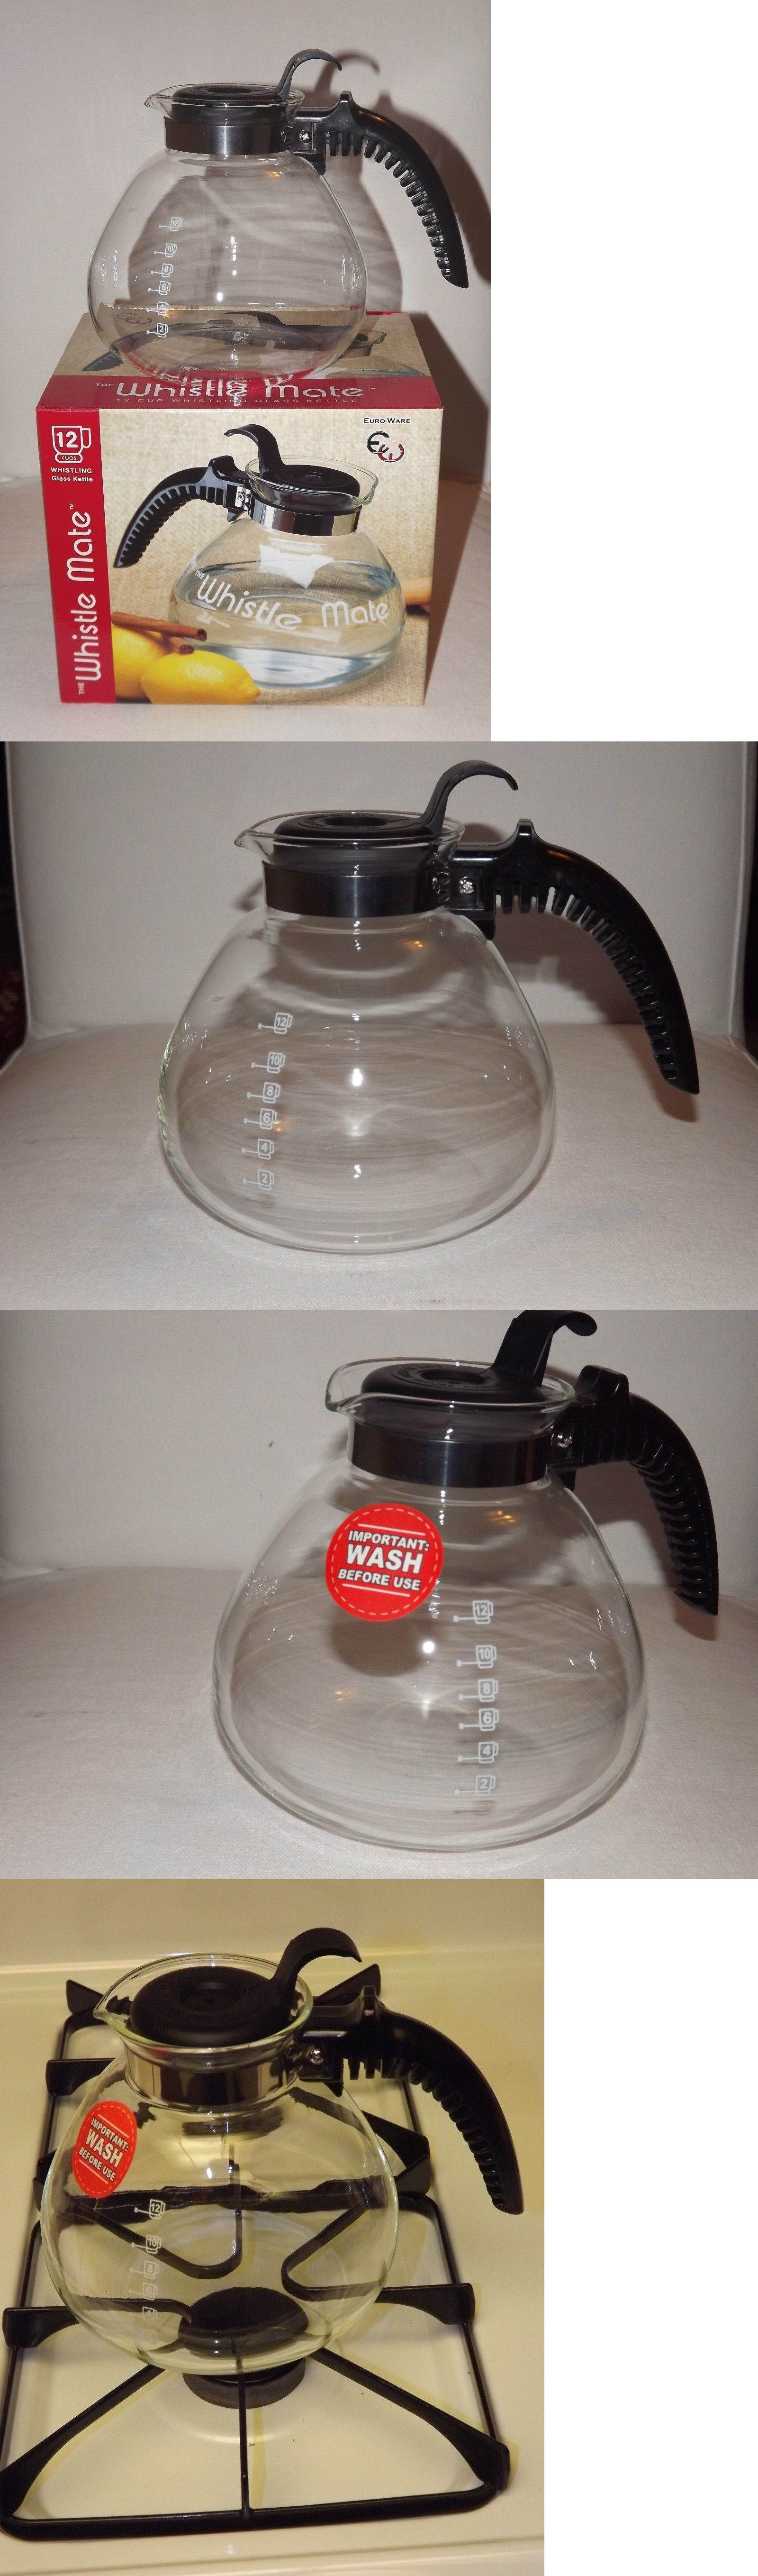 Teapots 115730 12 Cup 80oz Stovetop Glass Whistle Teapot Coffee Tea Kettle Pot Free Shipping Buy It Now Only 17 97 On Ebay Tea Kettle Tea Pots Kettle